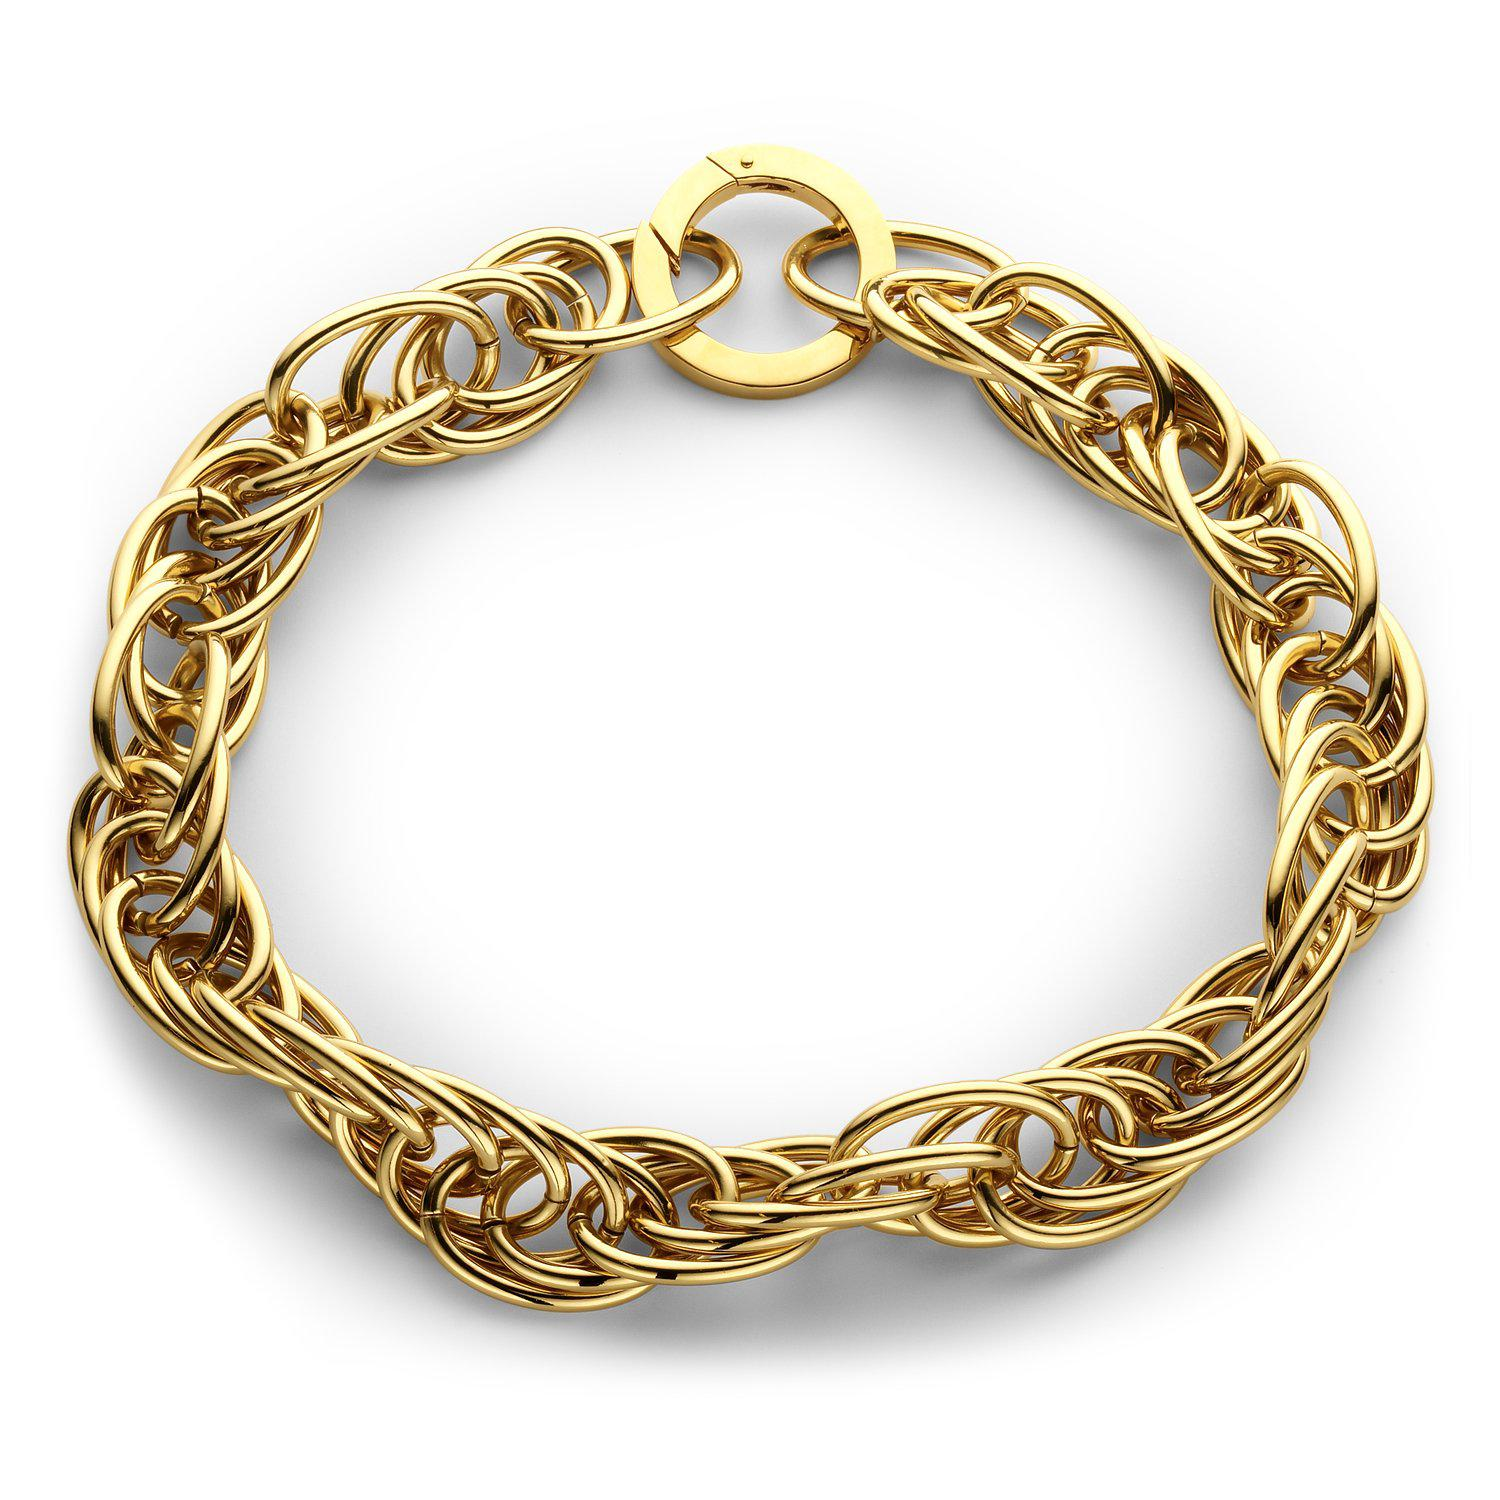 Large snake statement necklace gold - Souvenirs de Pomme